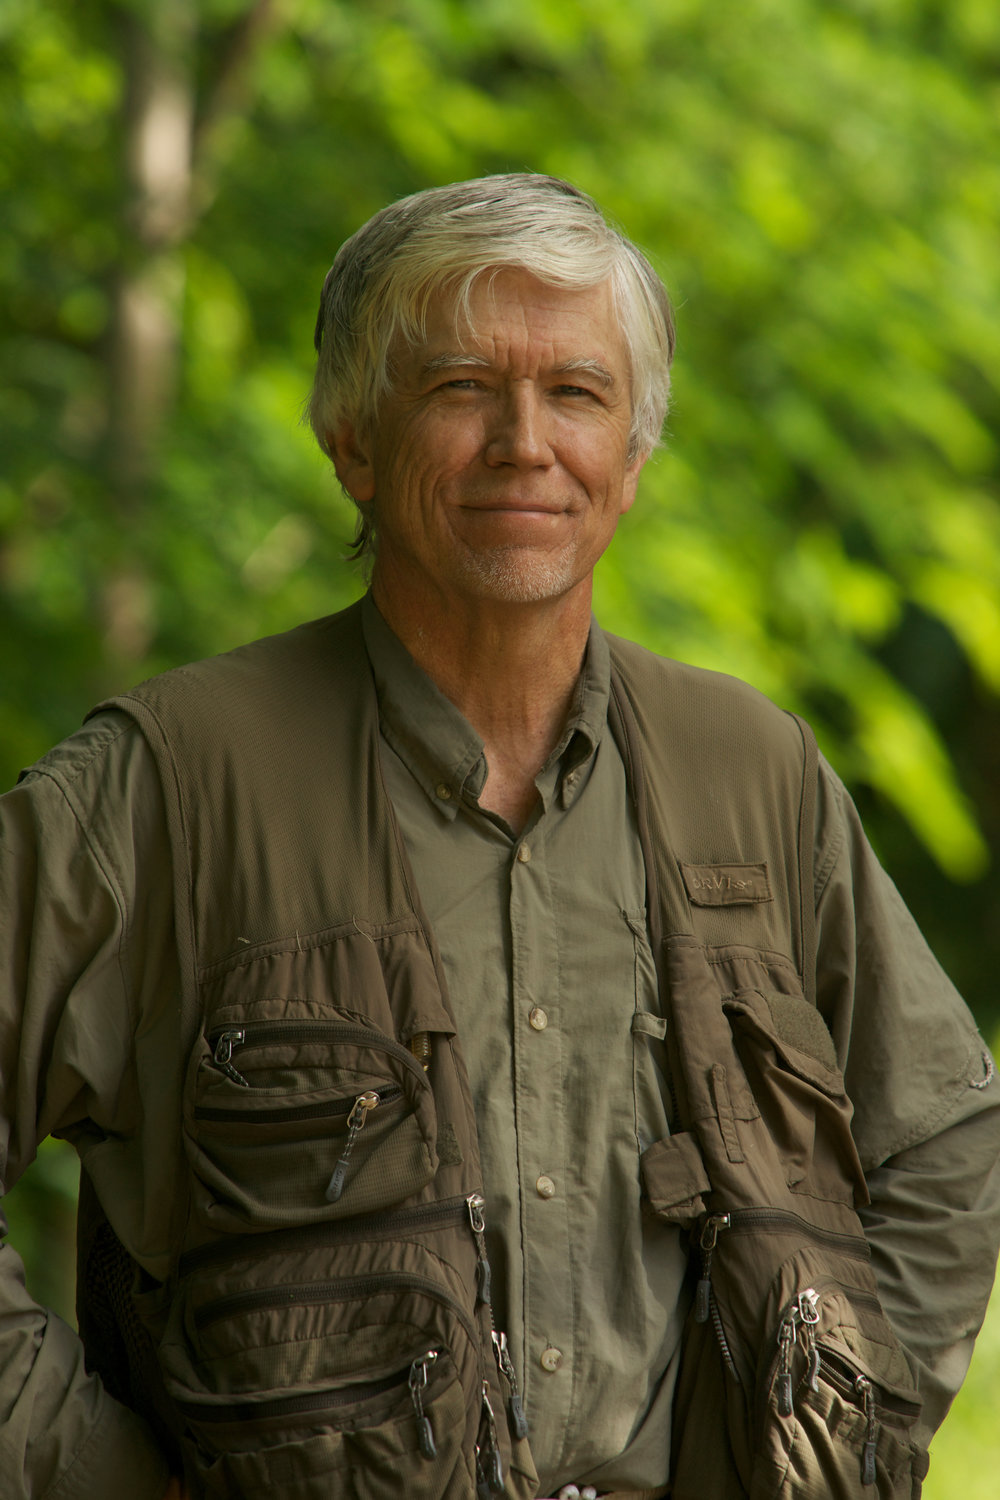 "Dr. Russ  Mittermeier - is Chief Conservation Officer of Global Wildlife Conservation and a board member of the Turtle Conservancy. Prior to this position, he served for three years as Executive Vice Chair at Conservation International and as President from 1989 to 2014. Named a ""Hero for the Planet"" by TIME magazine, Mittermeier is regarded as a world leader in the field of biodiversity and tropical forest conservation. Trained as a primatologist & herpetologist, he has traveled to 169 countries on seven continents, and conducted field work in more than 30, focusing on Amazonia , the Atlantic forest region of Brazil, and Madagascar."